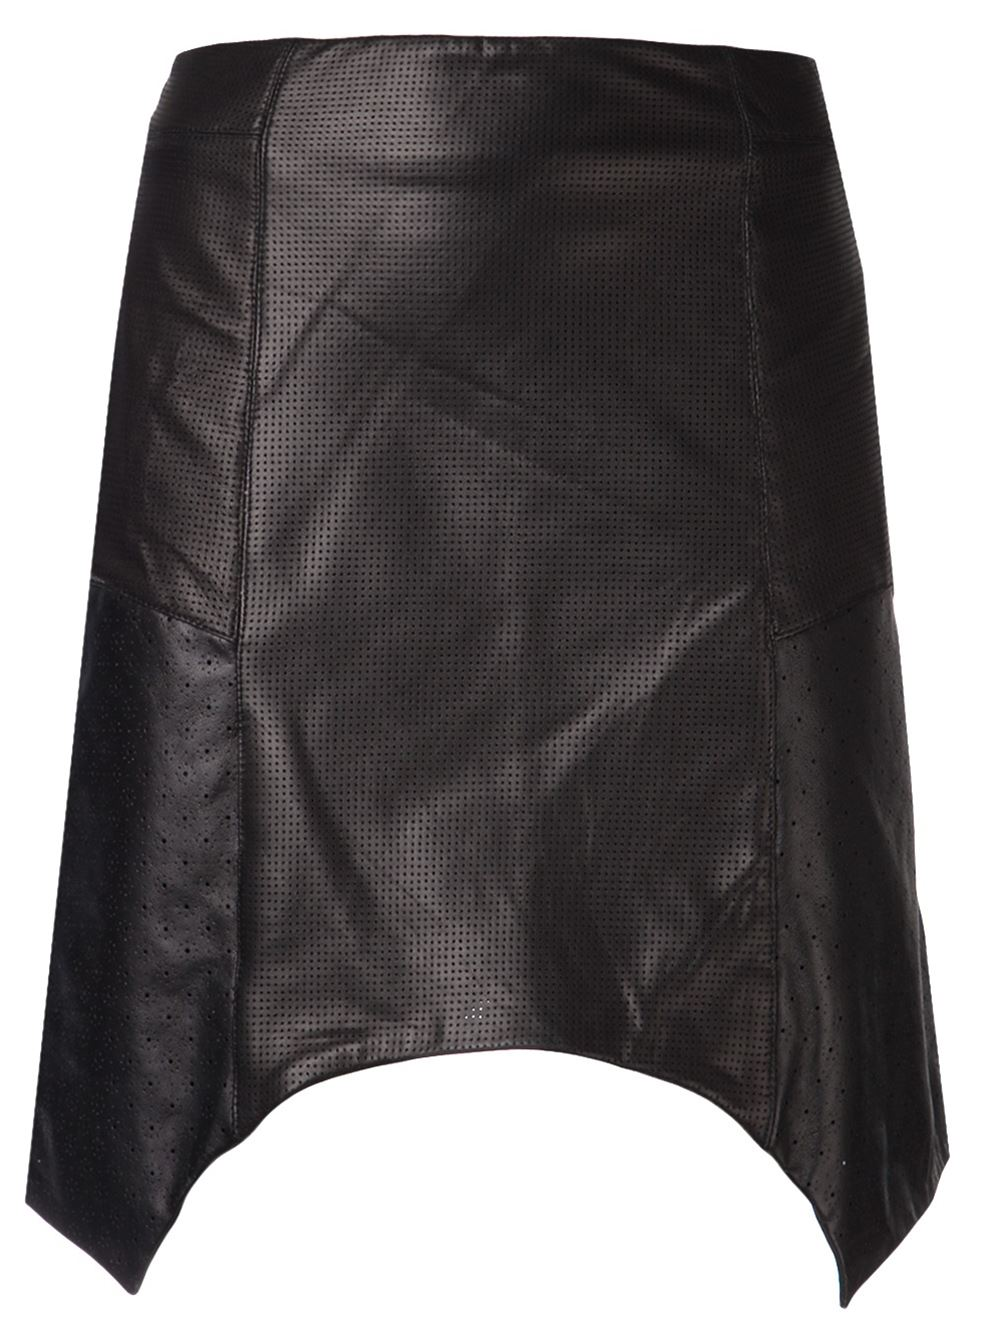 Black lambskin asymmetrical skirt from Tess Giberson